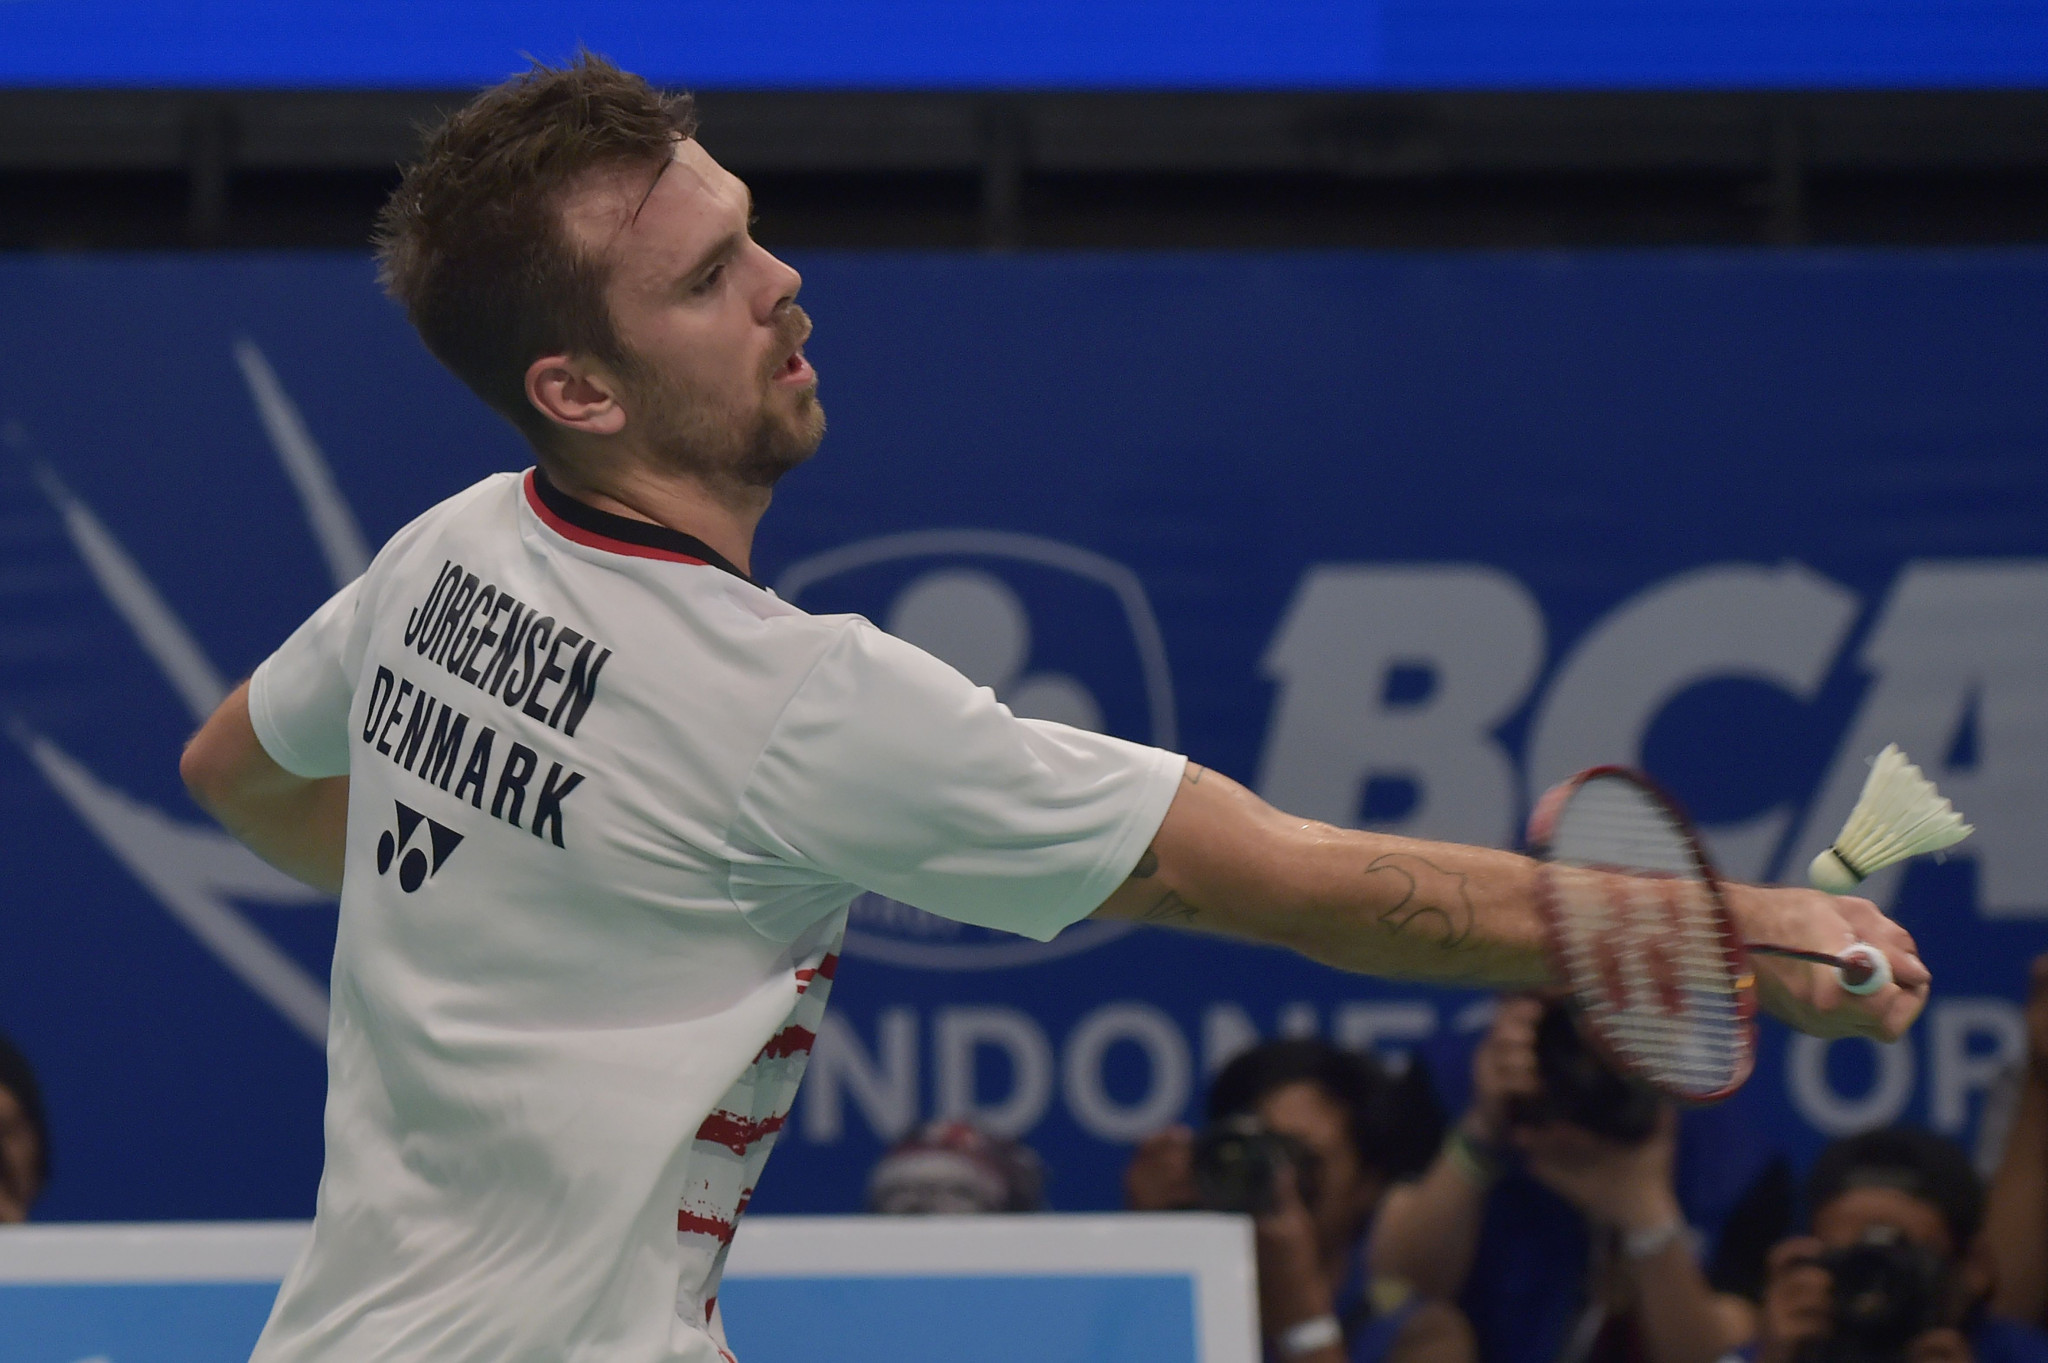 Danish men and women march on at European Team Badminton Championships